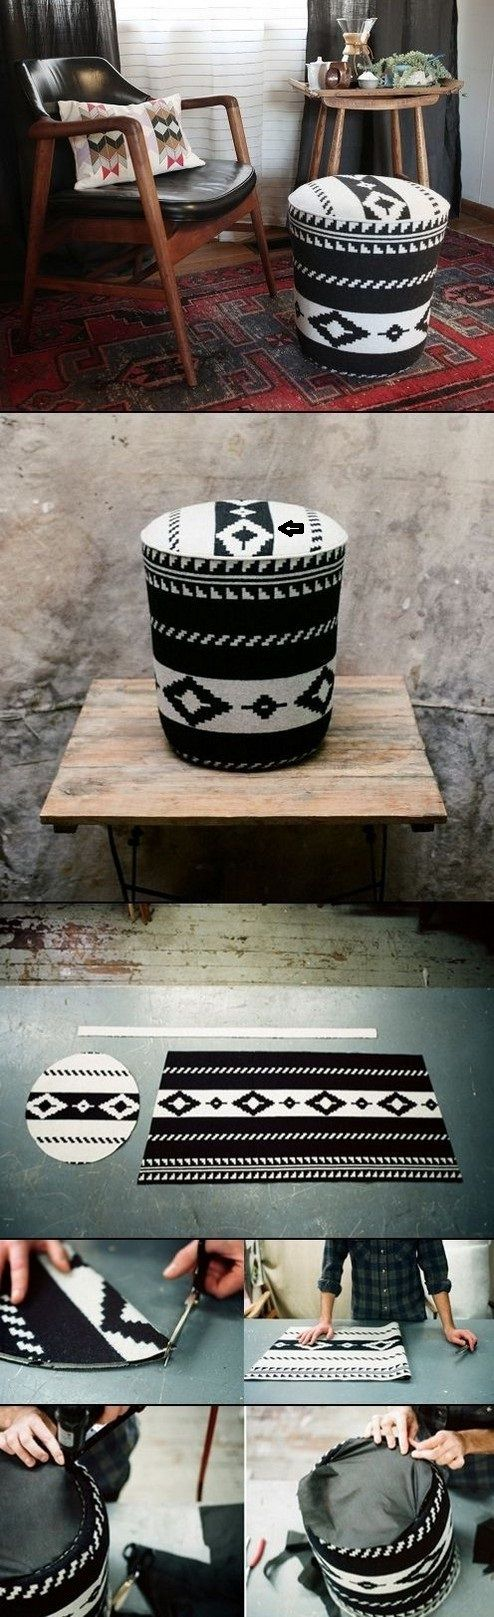 DIY UTILITY BUCKET OTTOMAN                                                                                                                                                                                 More